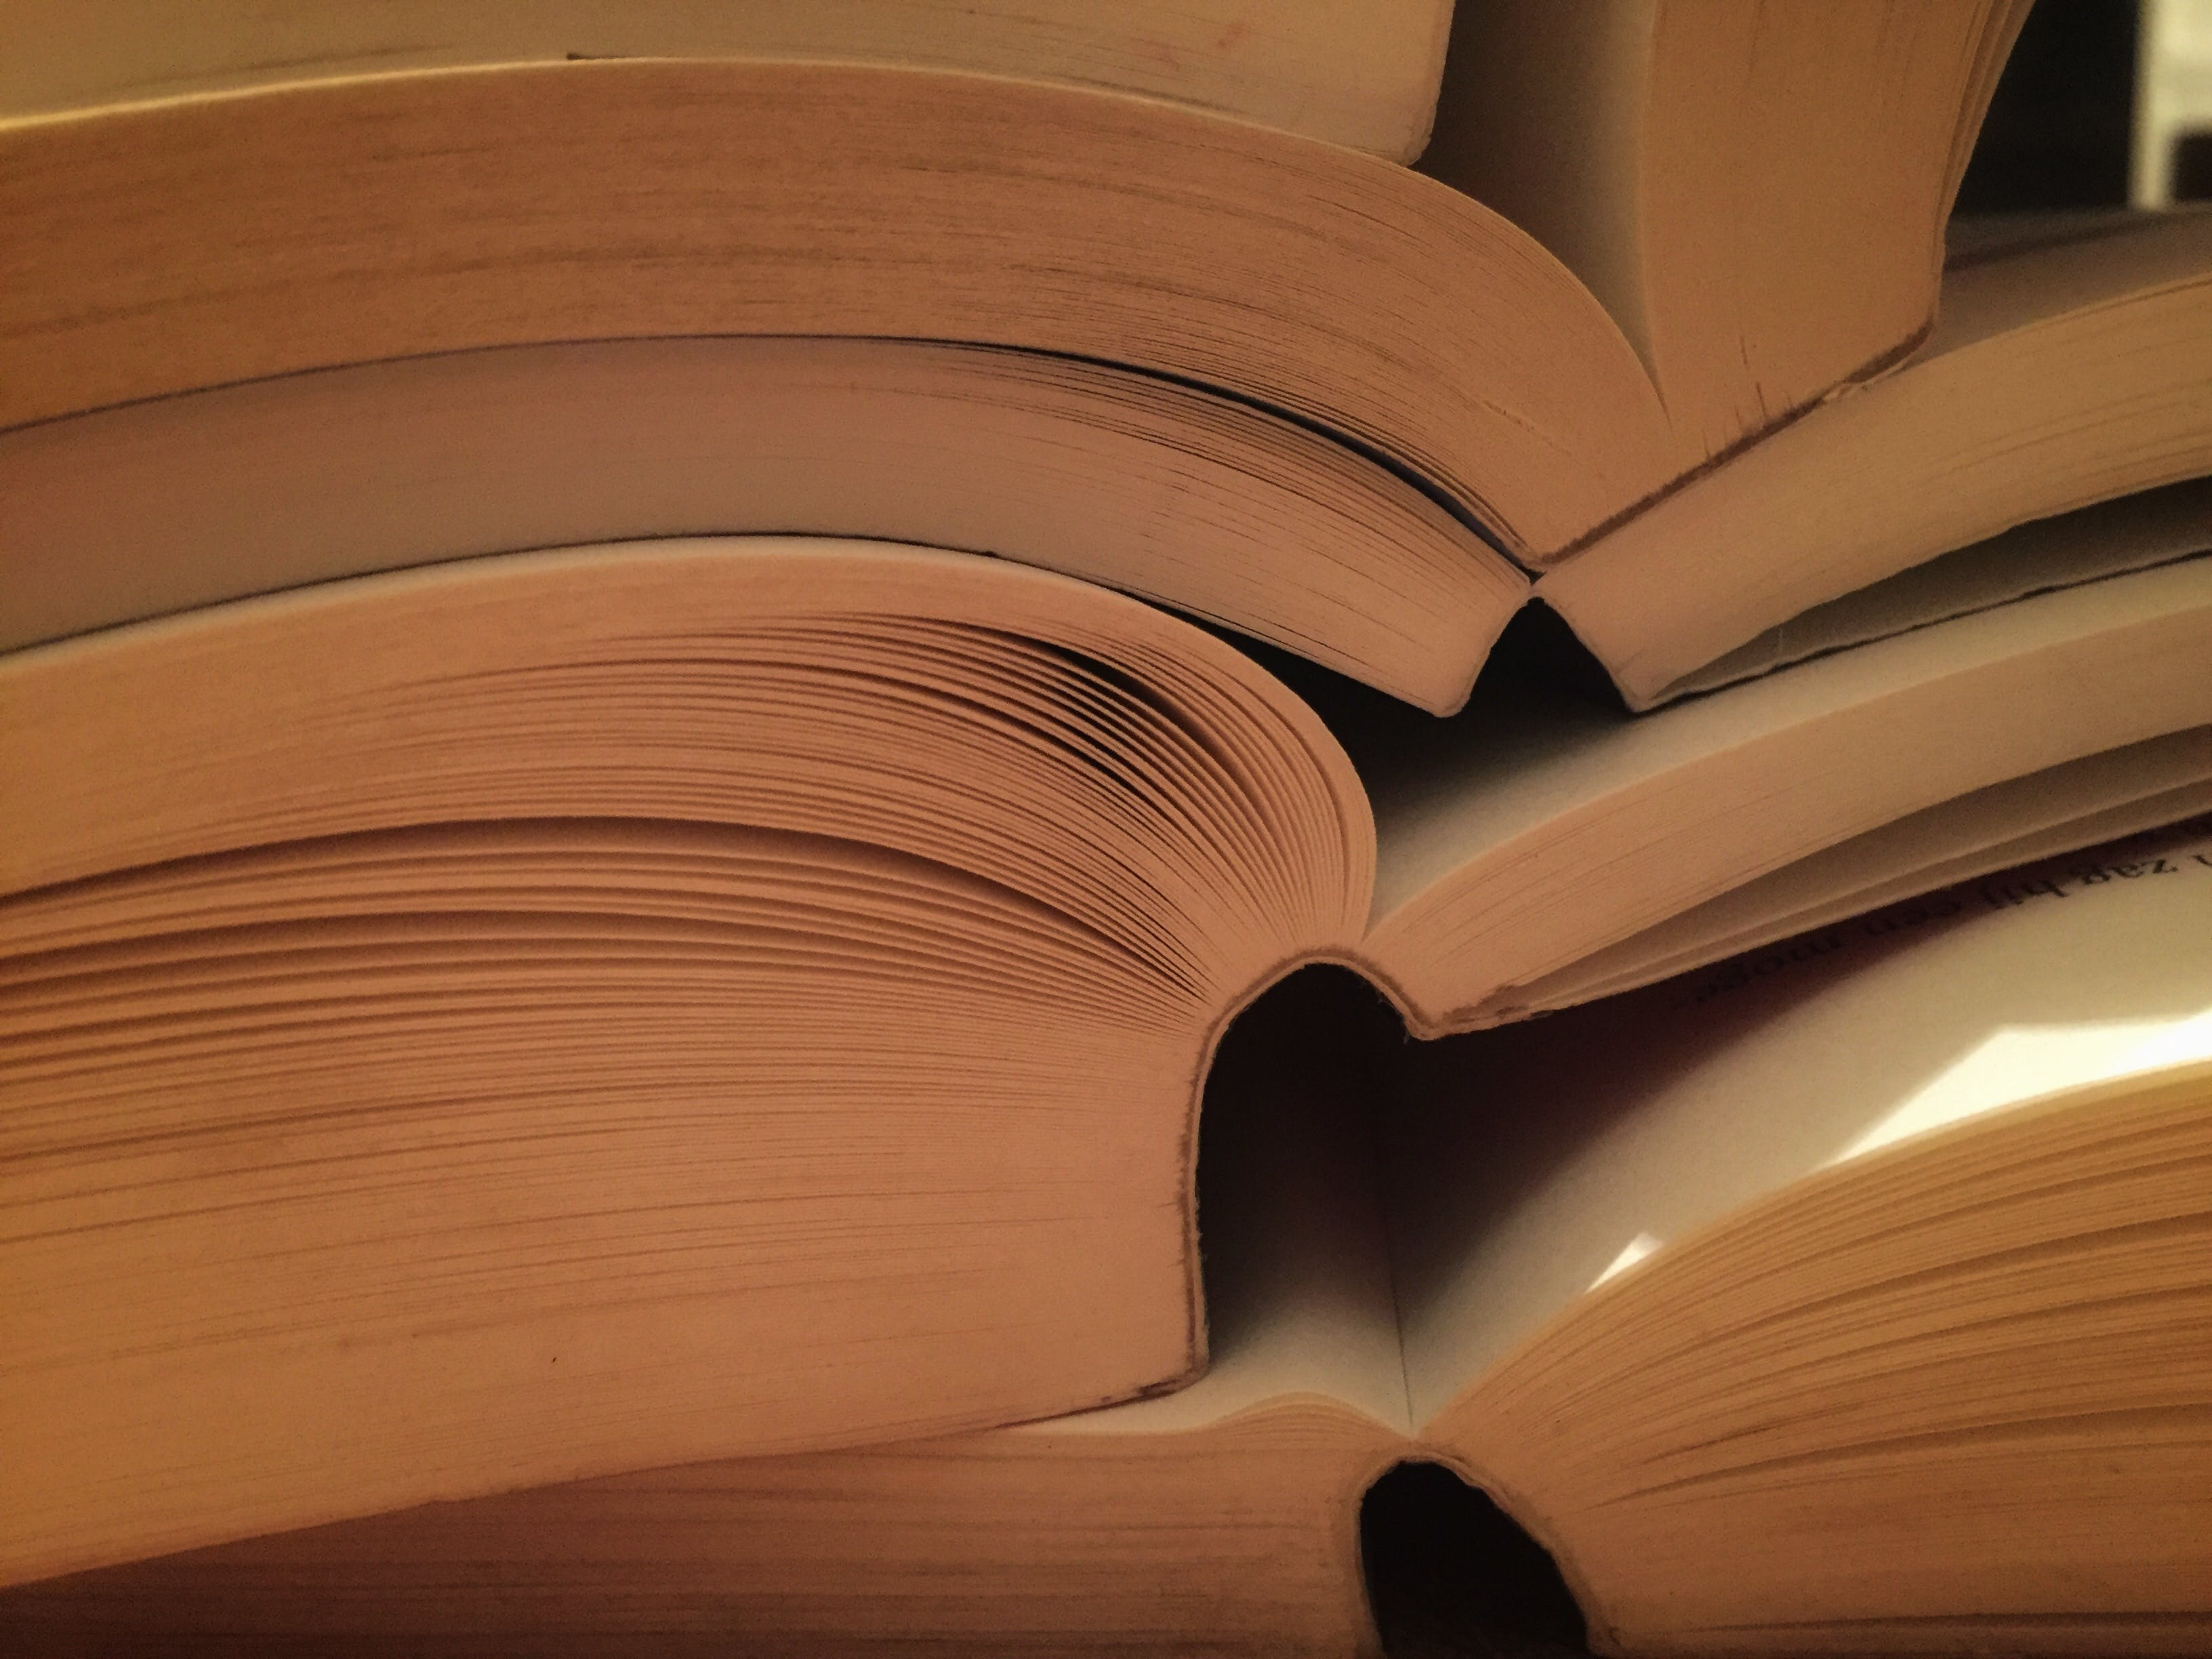 Free stock photo of book pages, book series, book stack, books